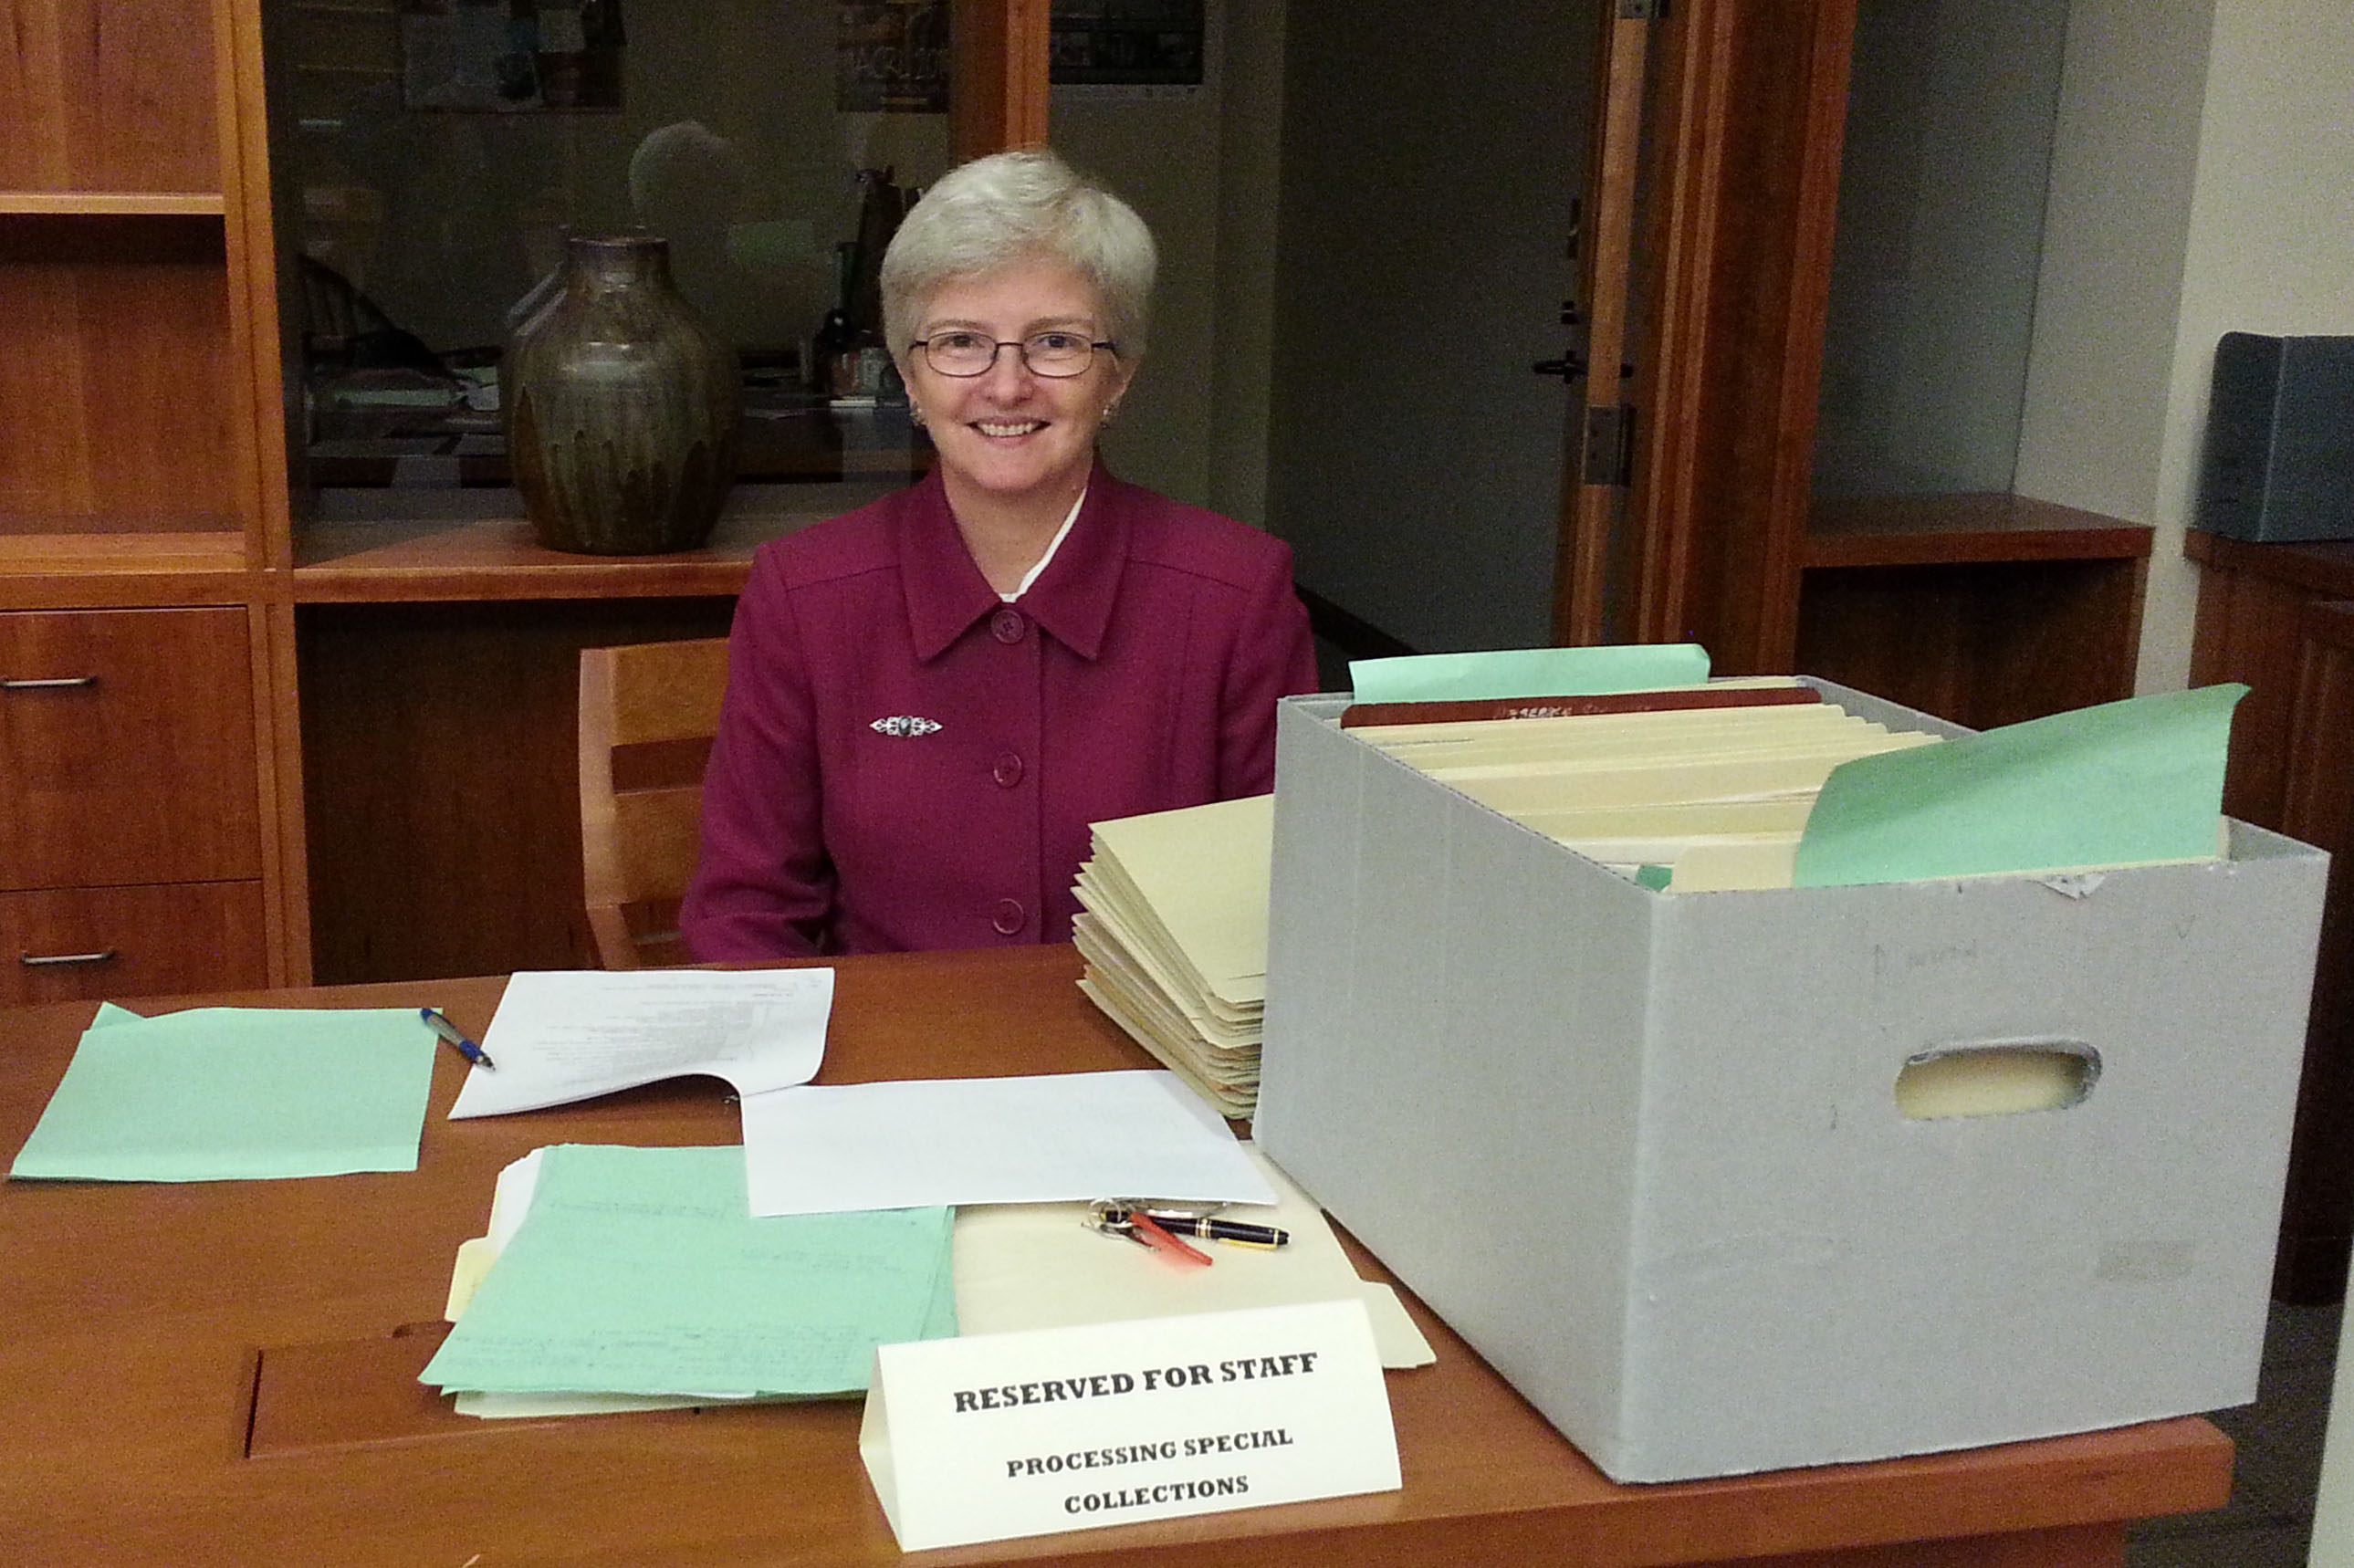 Karen Parshall, Honorary Archival Processor Extraordinaire.